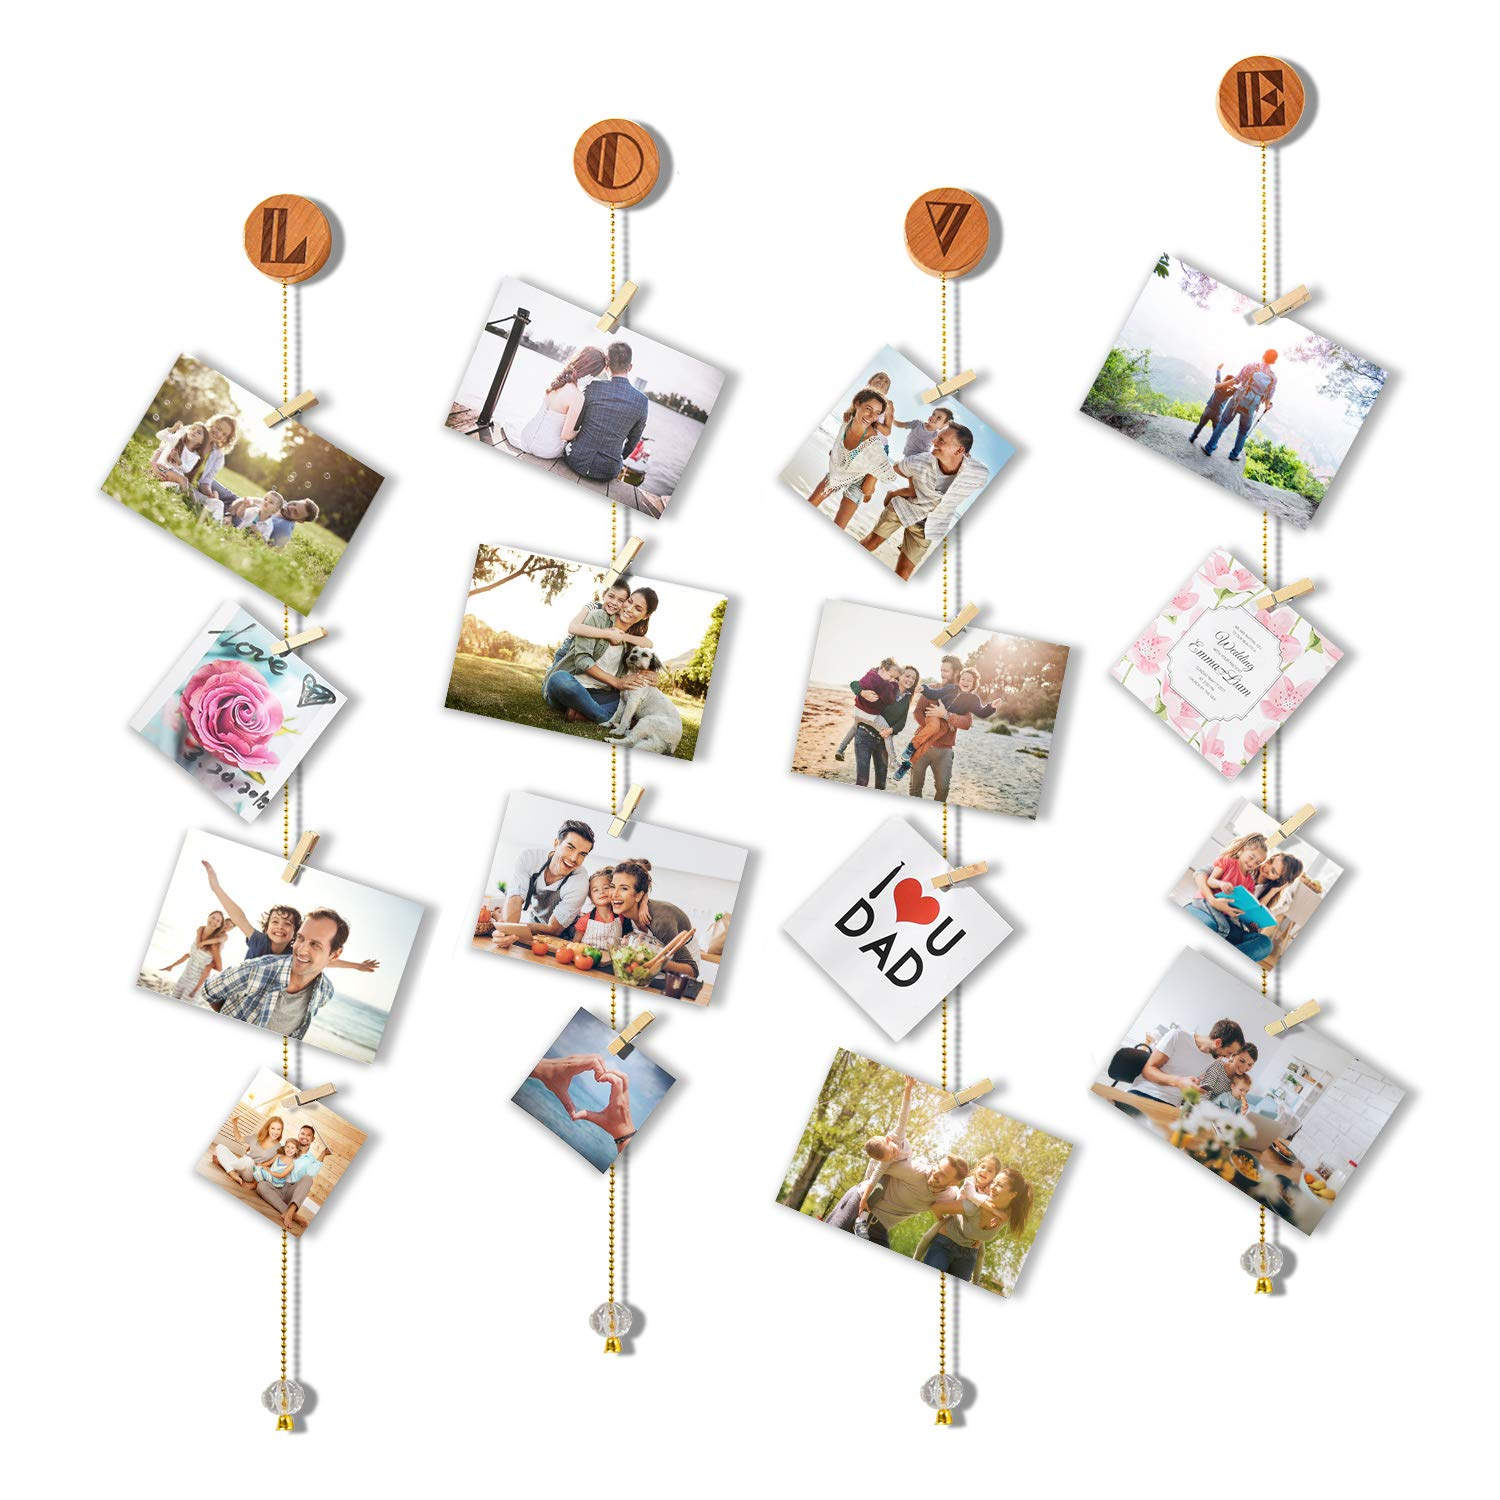 Olakee Love Hanging Photo Display Picture Frame Collage Picture Display Organizer with 20 Wood Clips for Wall Decor Hanging Photos Prints and Artwork by Olakee